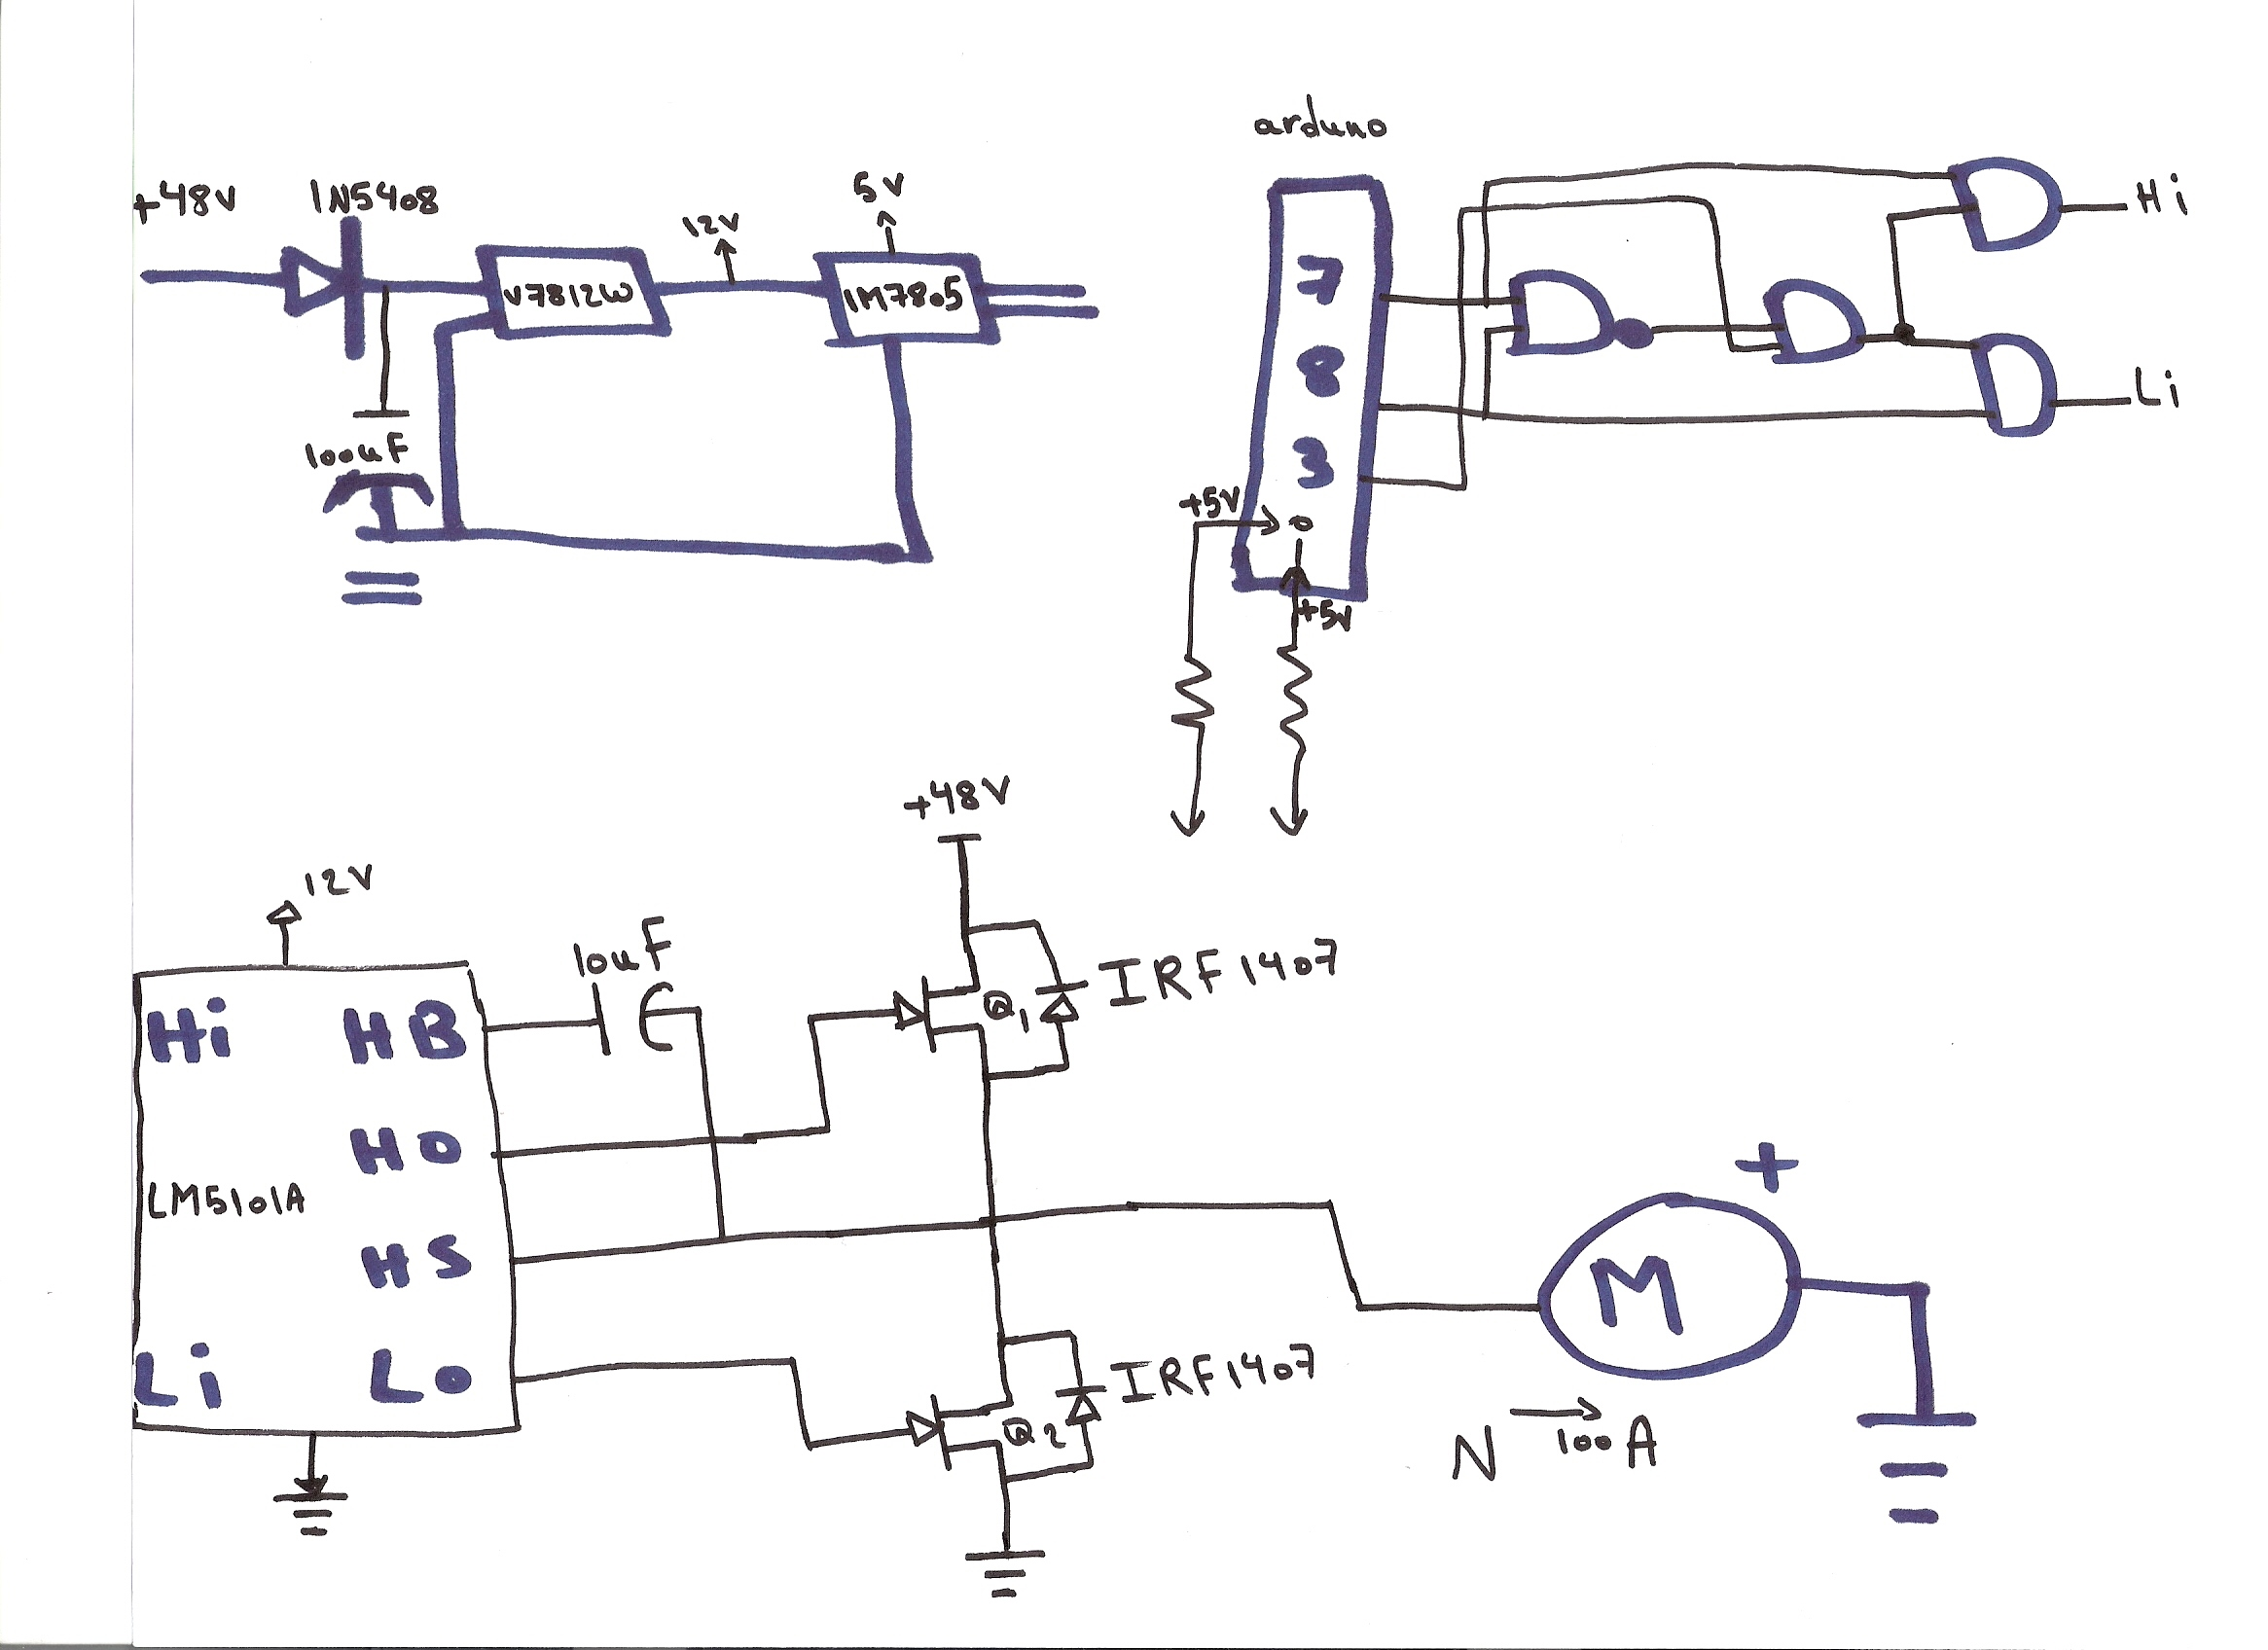 Lm5101a Keeps Burning Simple Circuit 2 Mosfet Half Bridge With Using A Fet As Voltage Controlled Resistor The And Gates Variable Arduino Uno Are 5 Volts From Lm7805 Chip Vdd Is Coming Ada Fruit Module V7812w